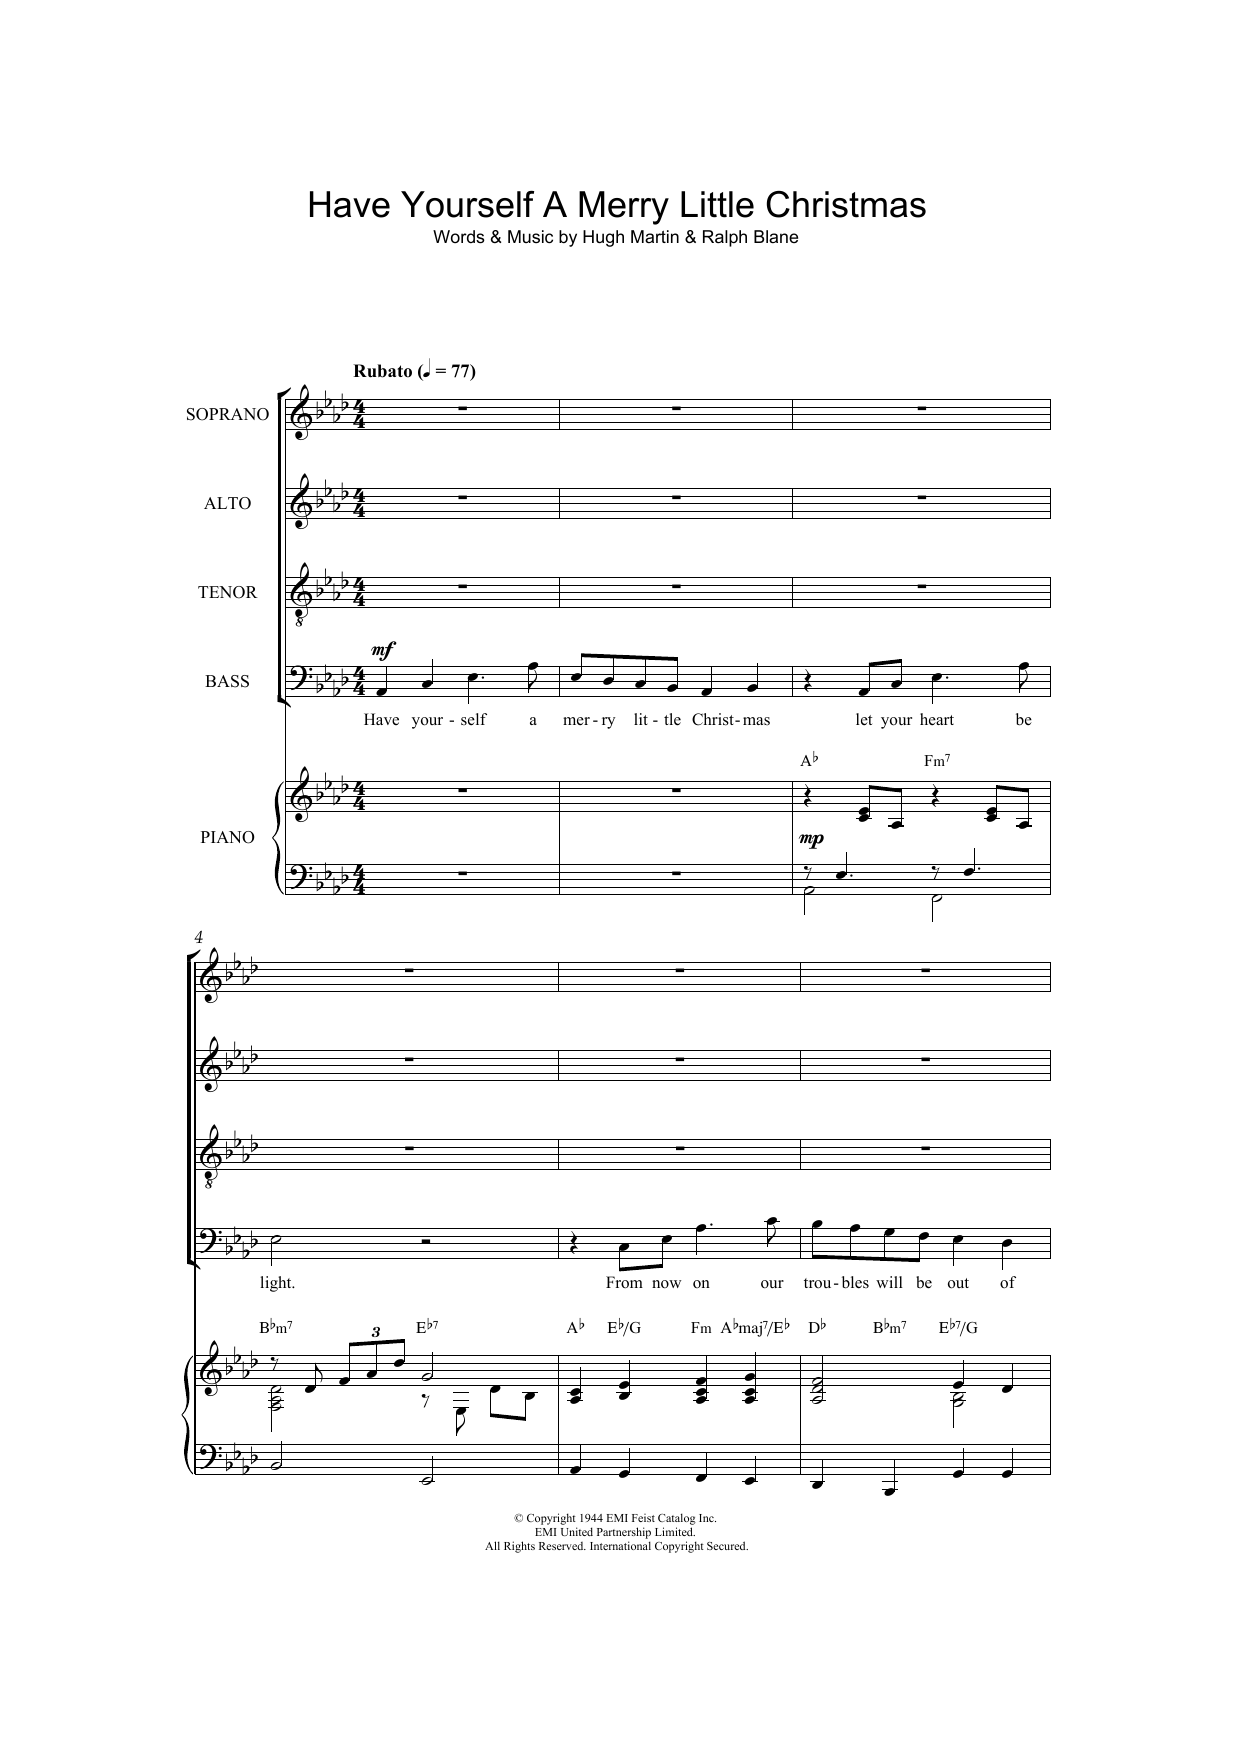 Frank Sinatra Have Yourself A Merry Little Christmas.Have Yourself A Merry Little Christmas Arr Thomas Lydon By Frank Sinatra Satb Choir Digital Sheet Music